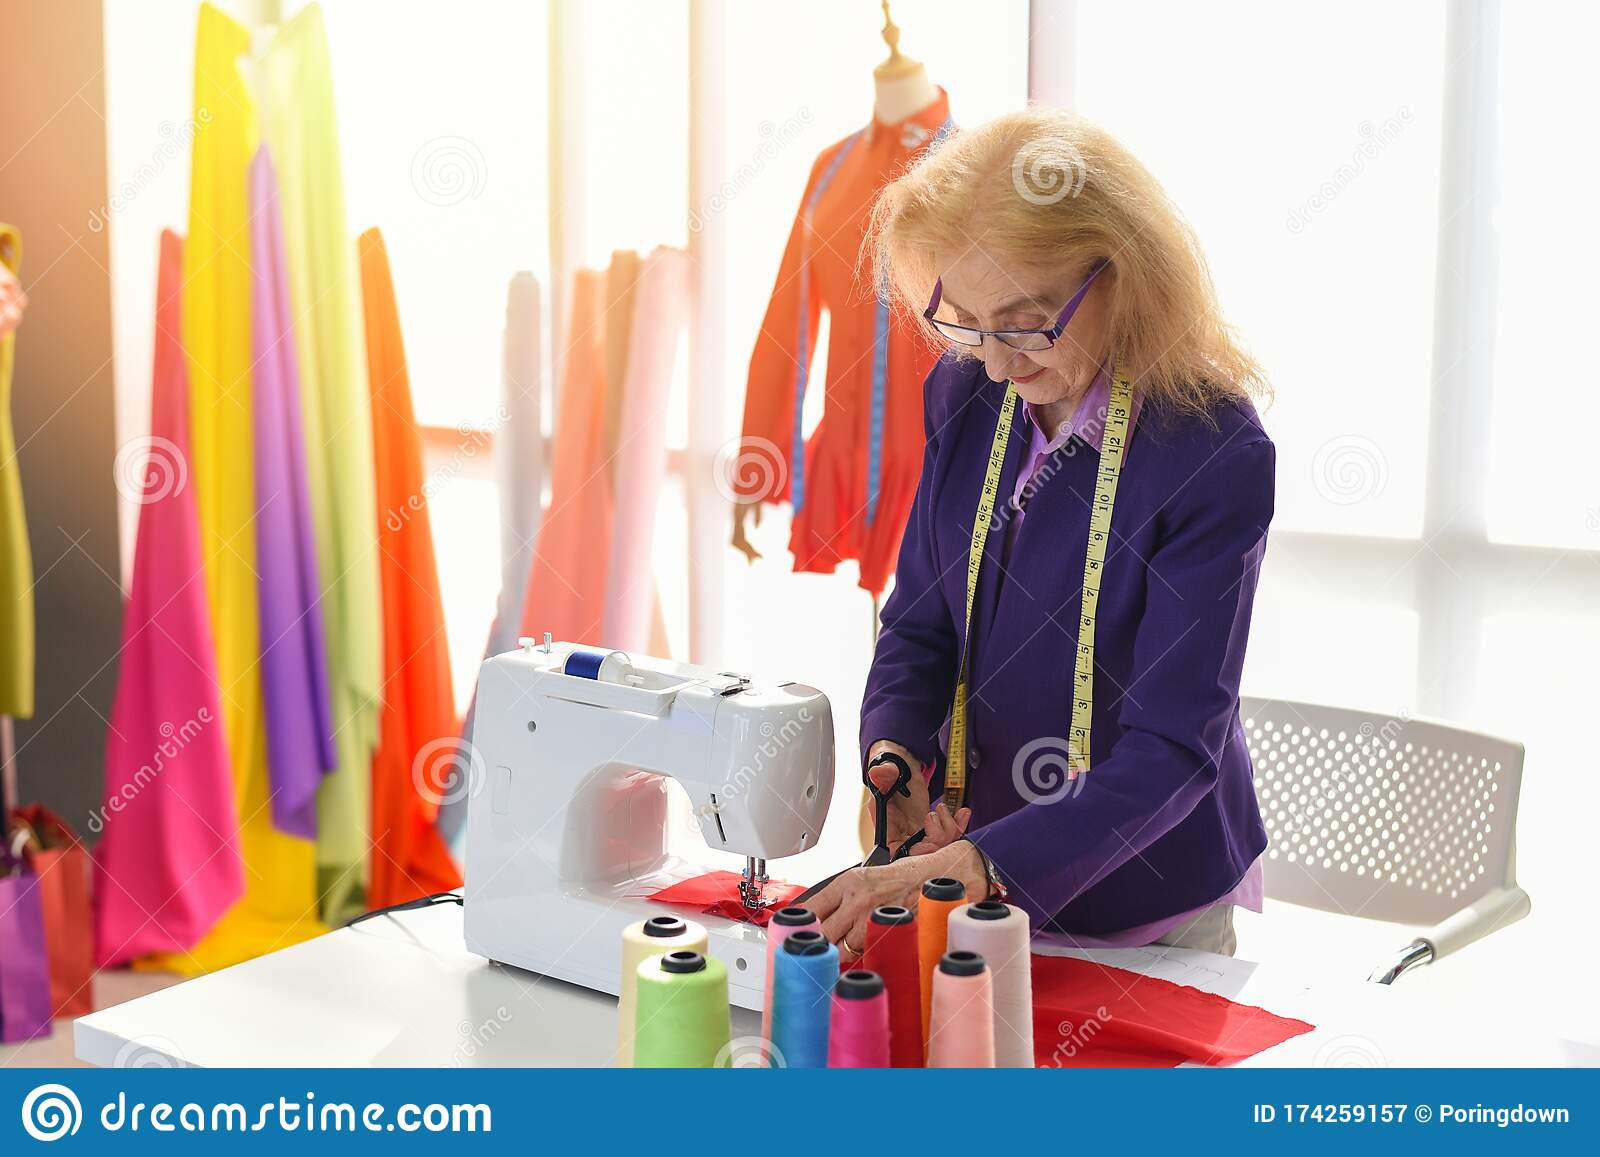 Fashion Designer Studio Measuring Textile Material Scissors Cutting Fabric By Senior Woman Designer Stylish Showroom Hanging Stock Image Image Of Collection Fabric 174259157